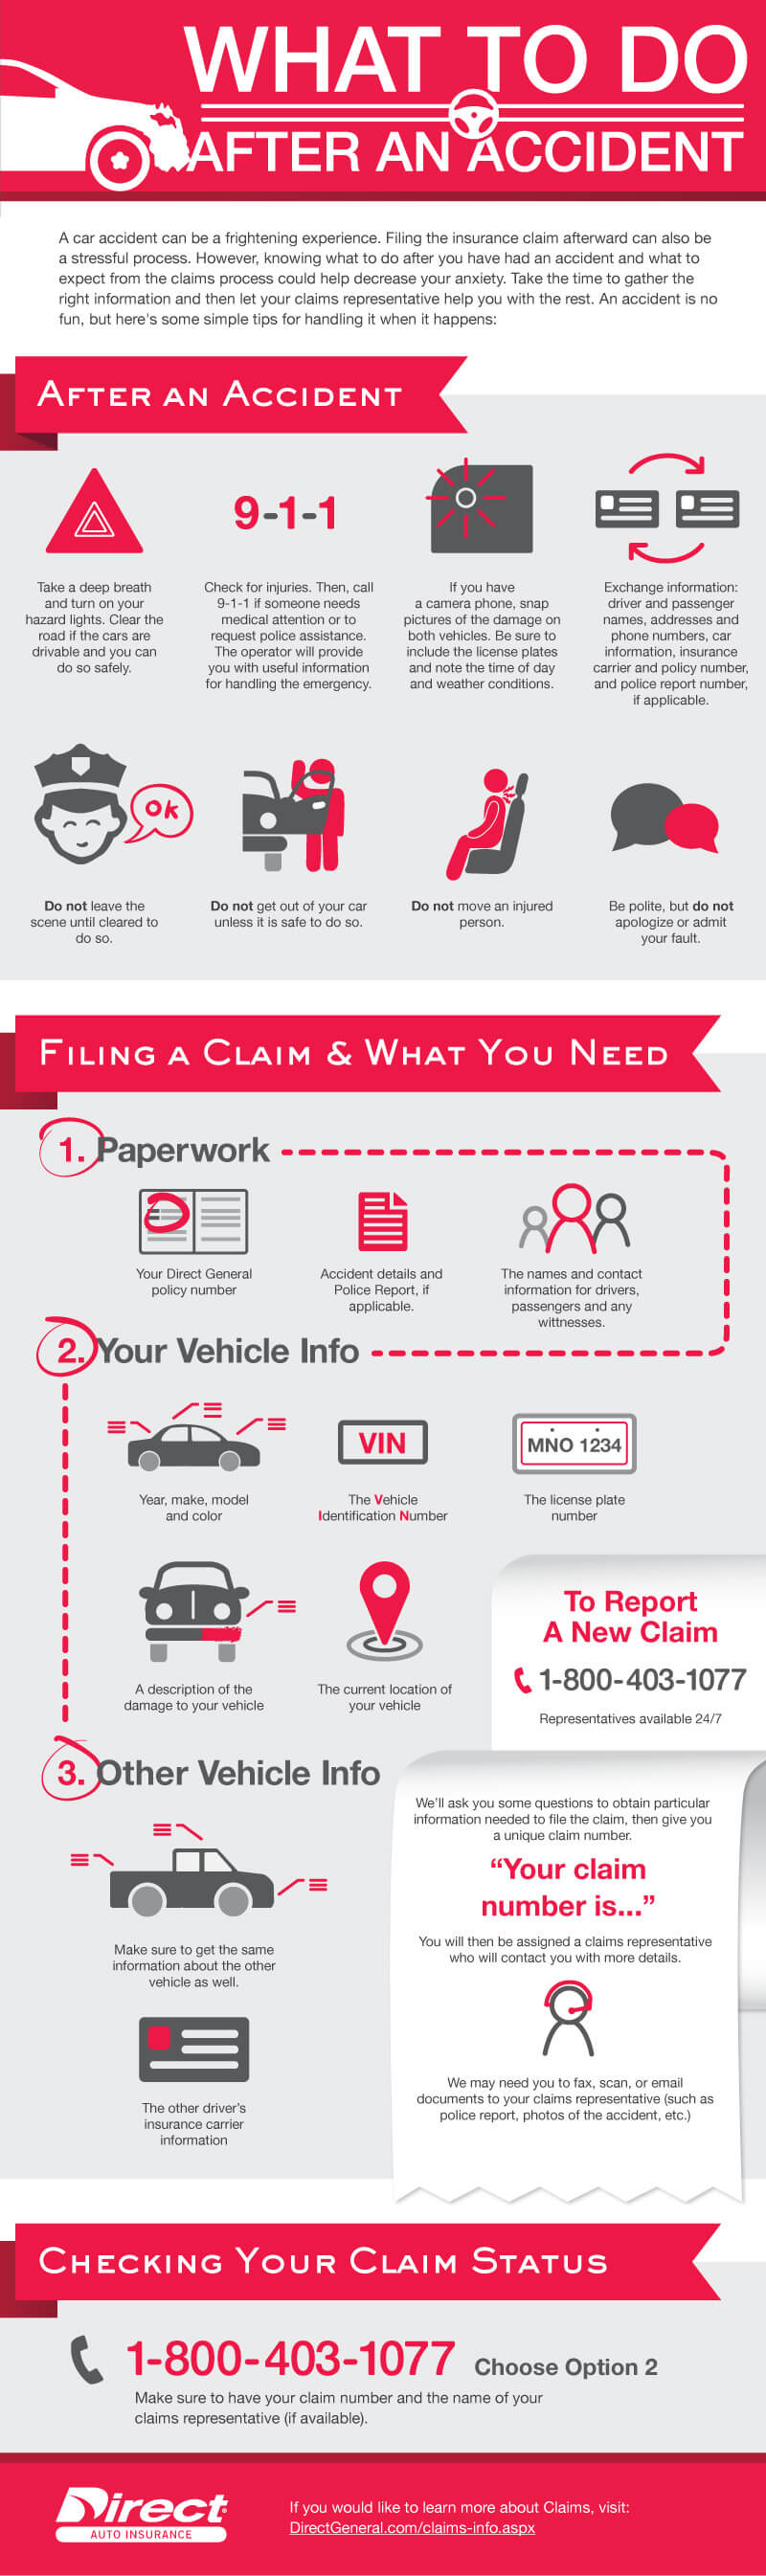 Direct General Auto Insurance >> What to Do After a Car Accident | Infographic | Direct Auto & Life Insurance